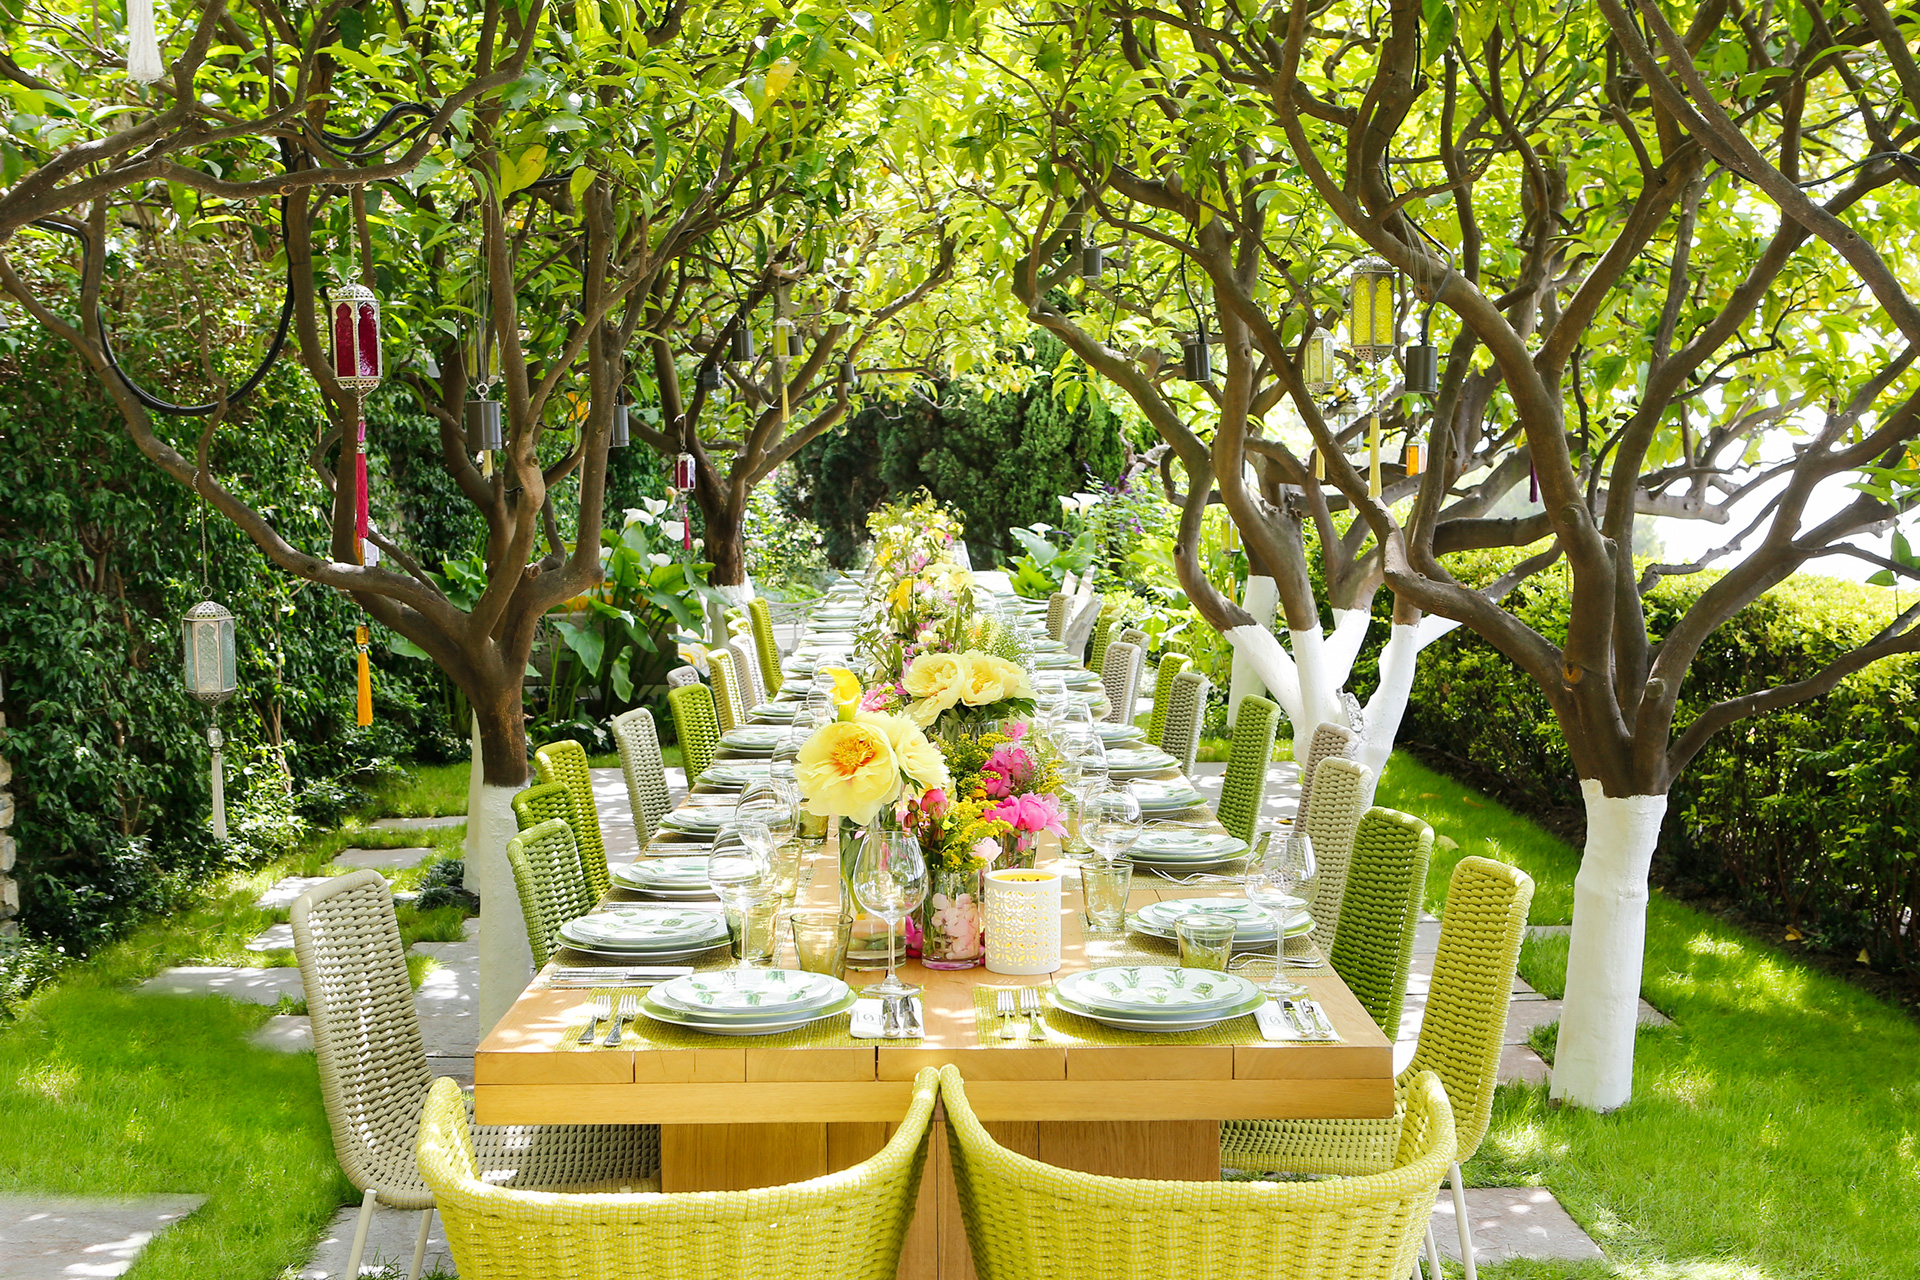 The outdoor dining area makes a happy appearance, all dressed up for a summery brunch for Sabrina and her friends | Villa Riviera | Sabrina Monteleone-Oeino | STIR